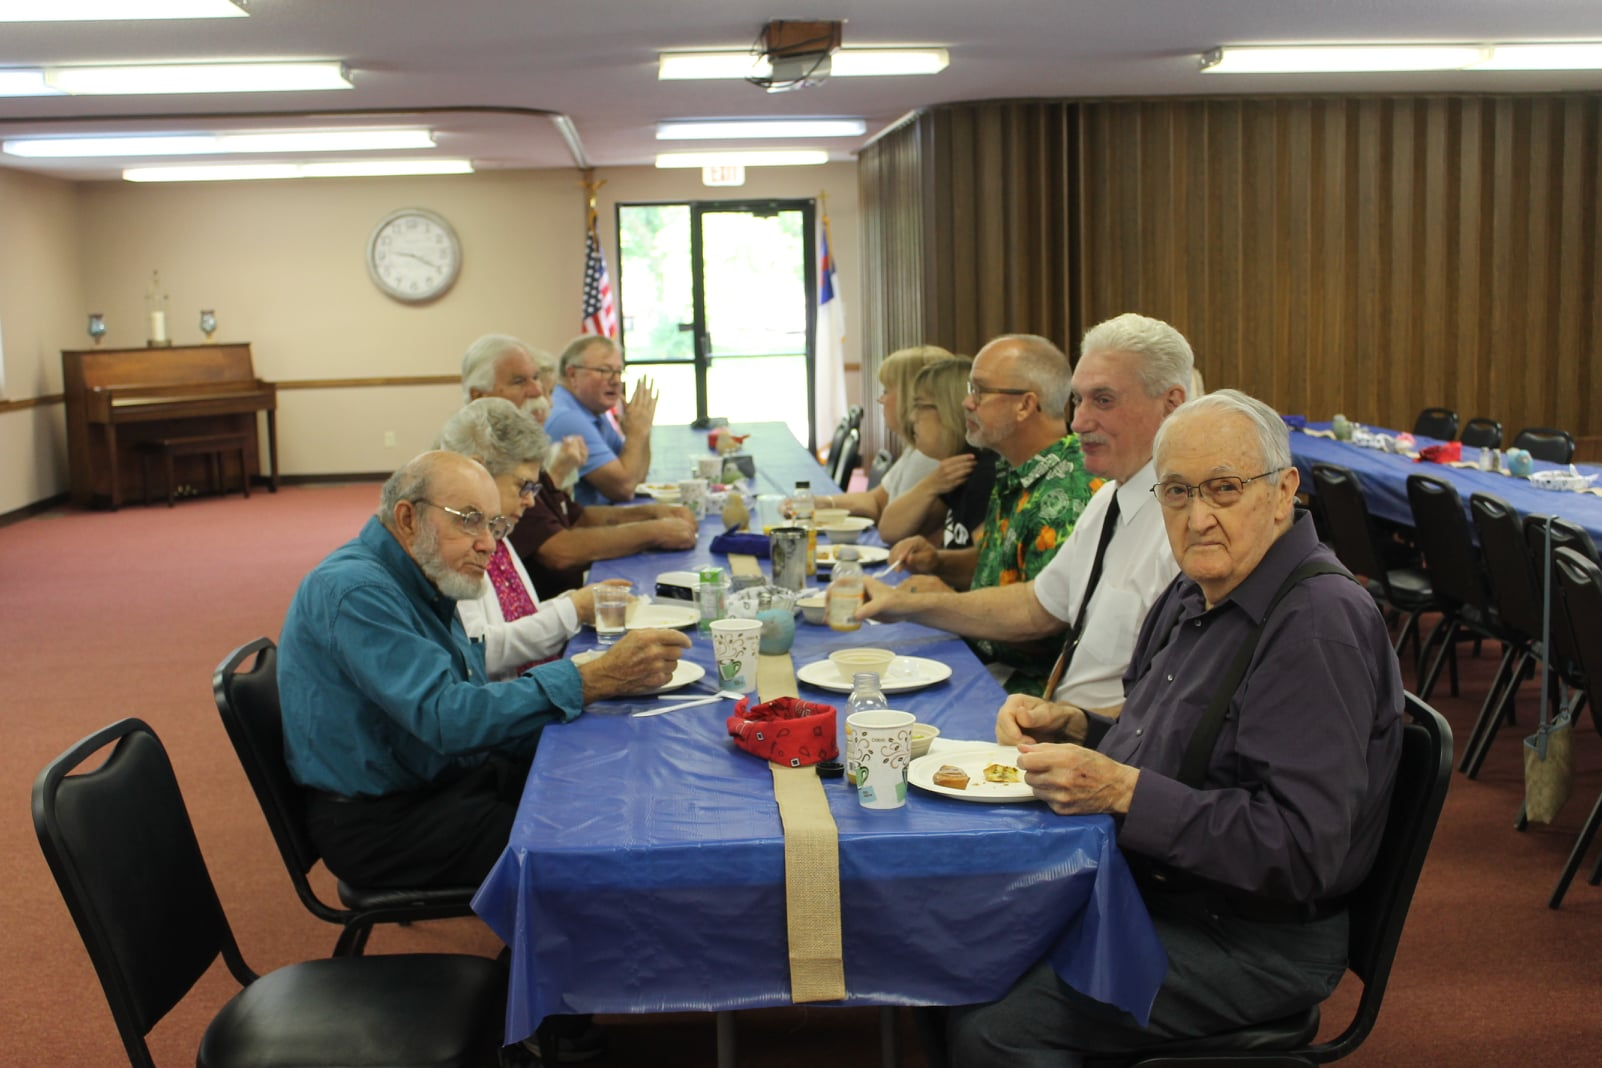 church members gathering at a table for a meal girard il